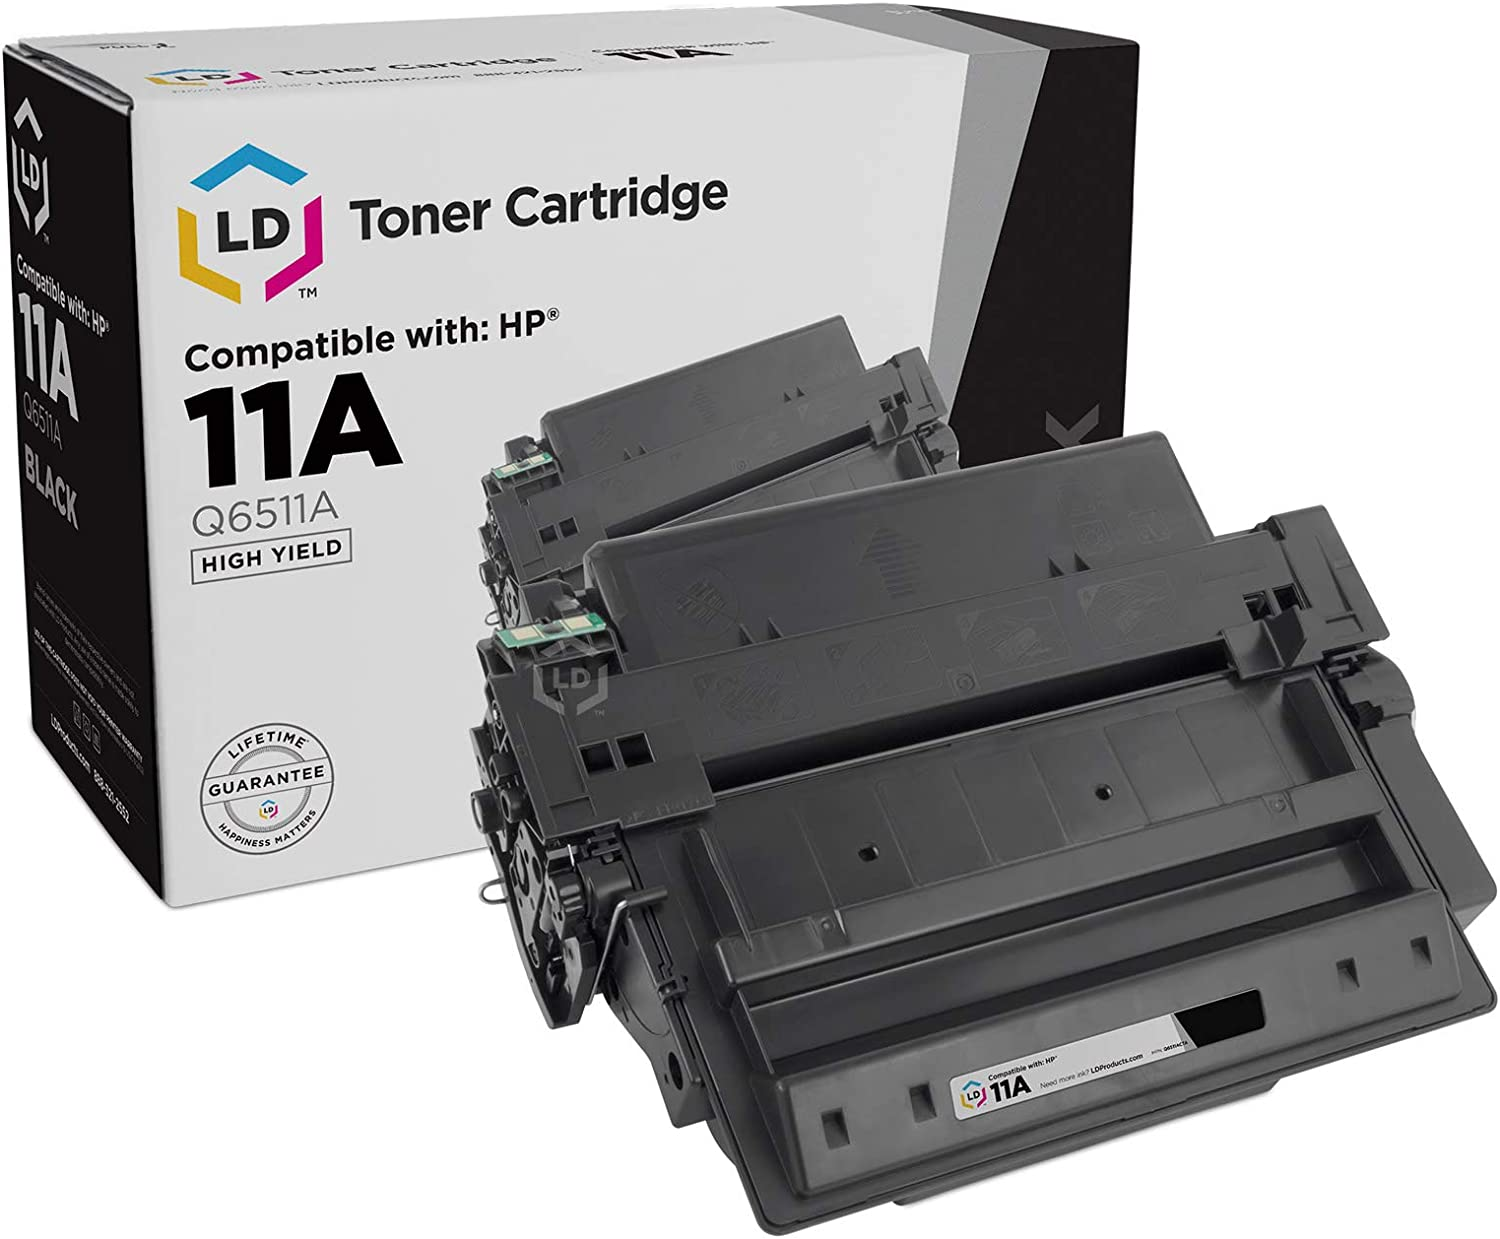 LD Compatible Toner Cartridge Replacement for HP 11A Q6511A (Black)